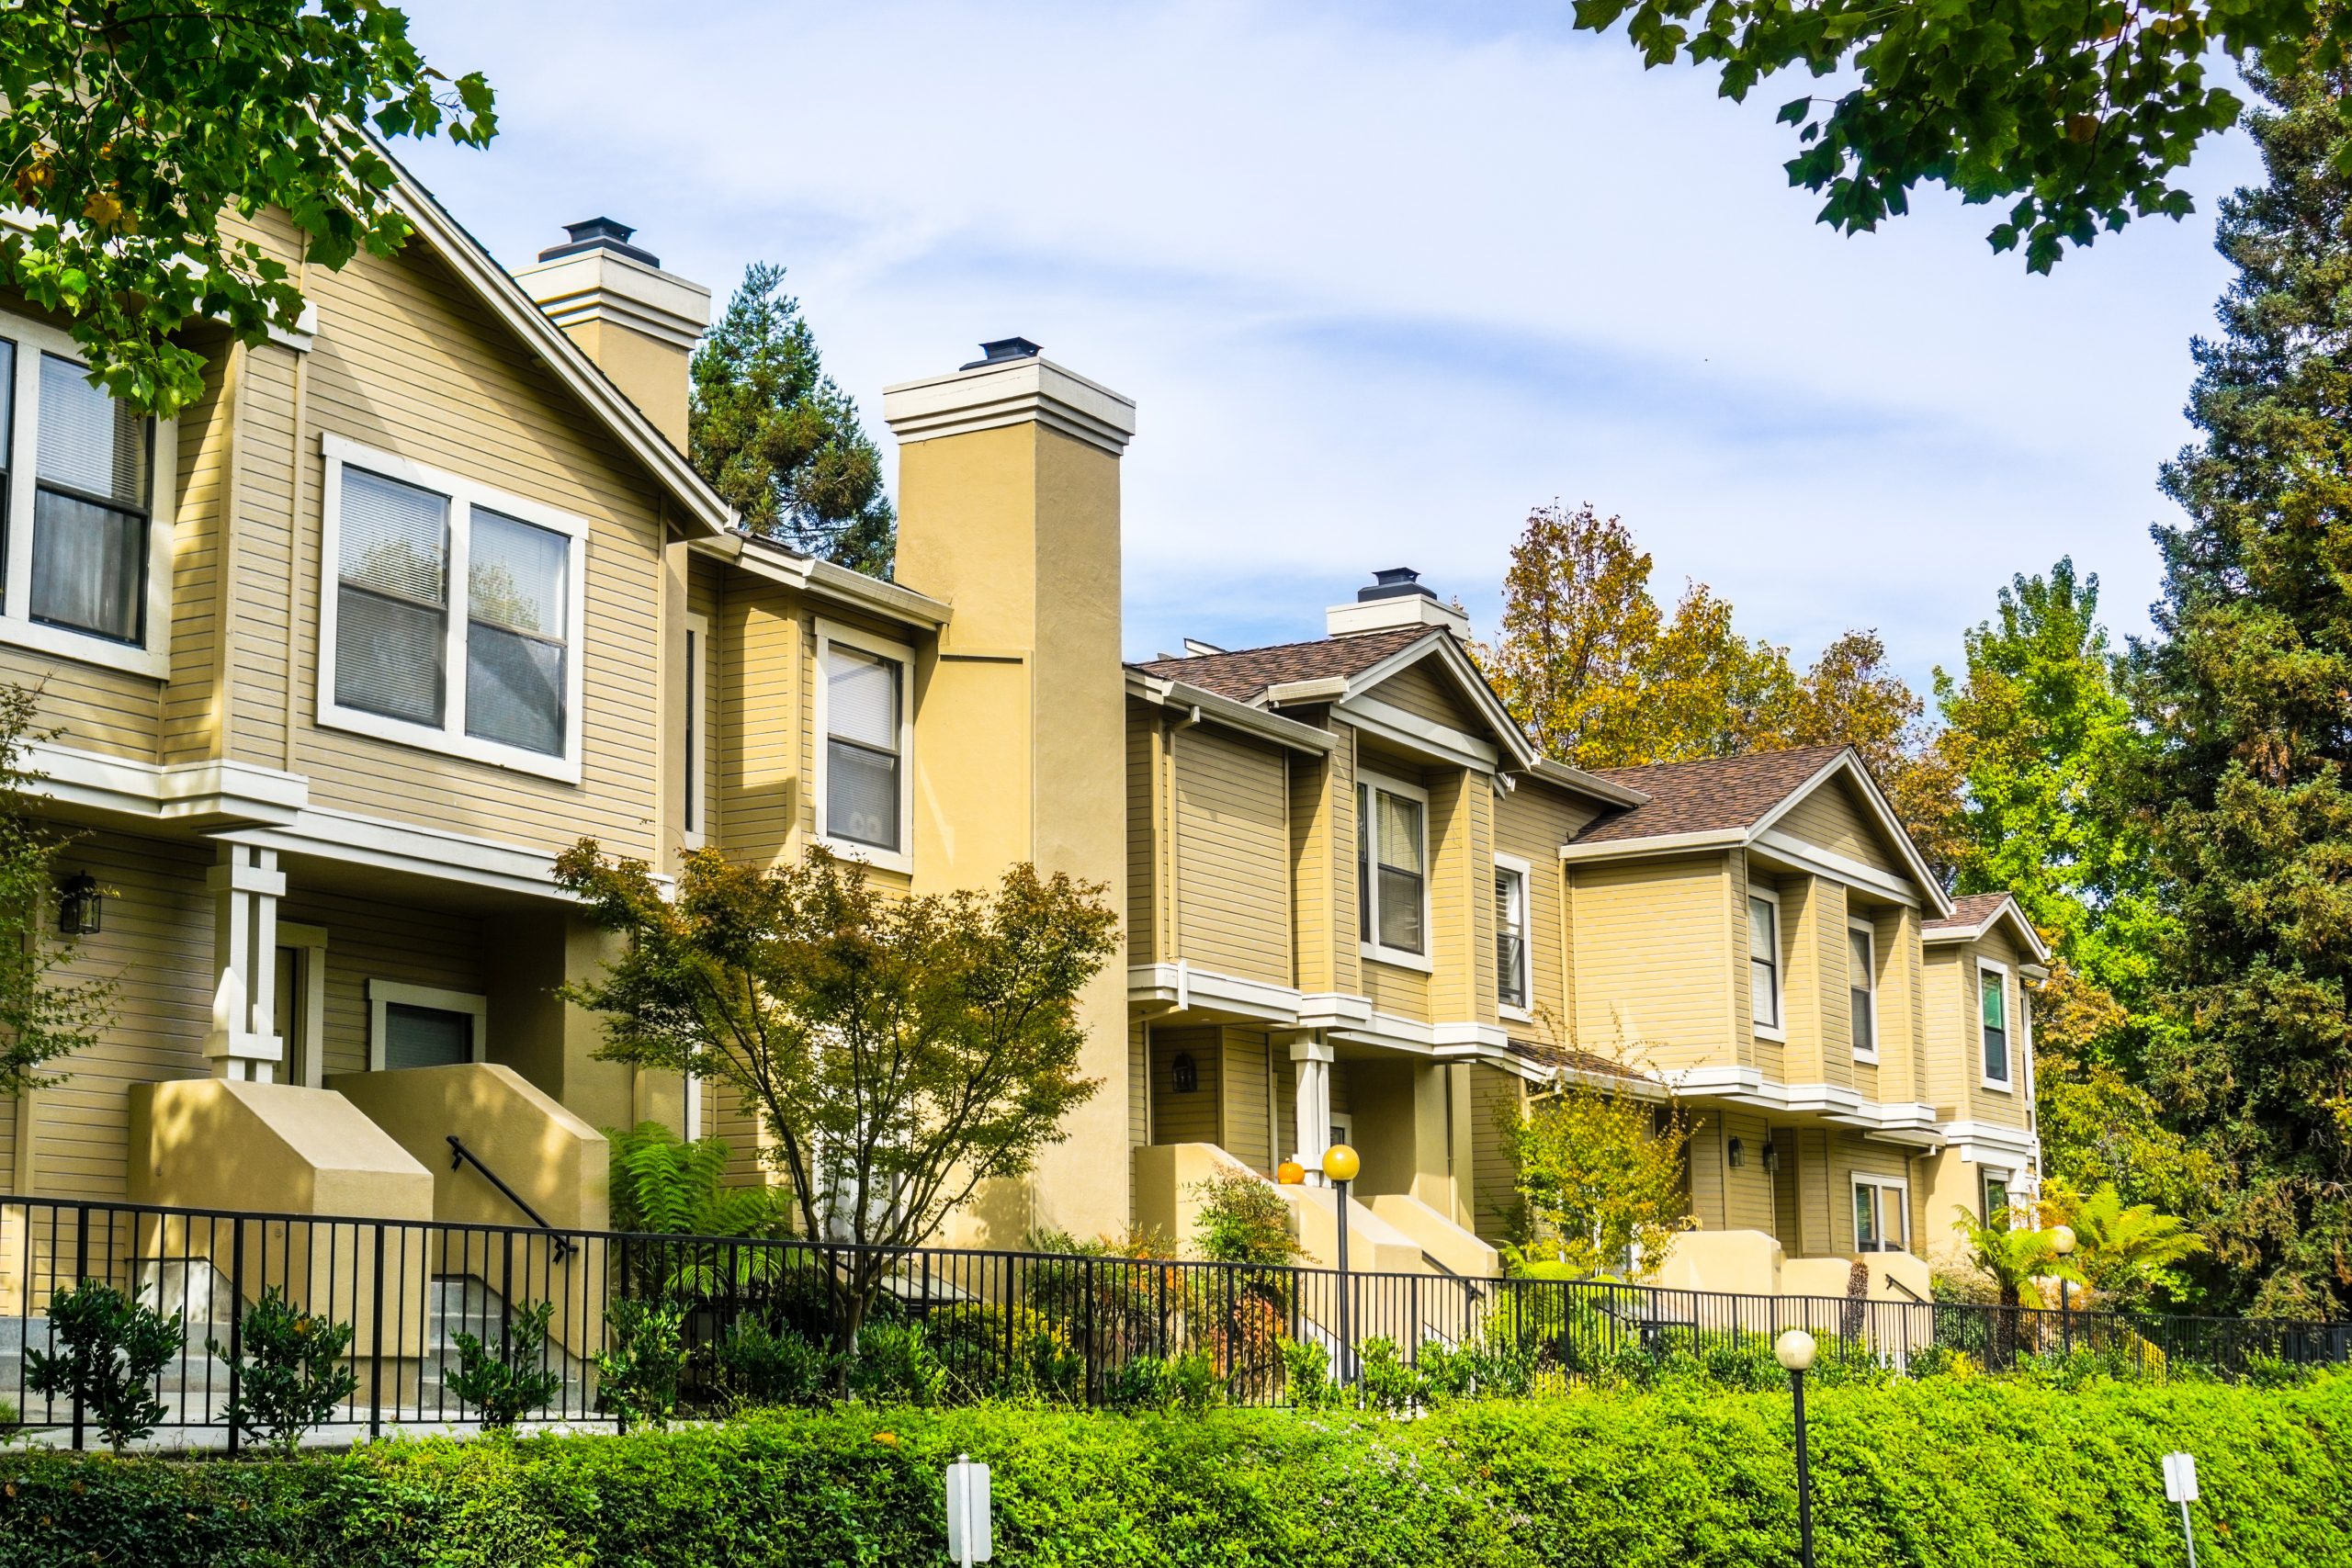 Five Common Ways to Hold Real Property Titles Washington DC Legal Article Featured Image by Antonoplos & Associates